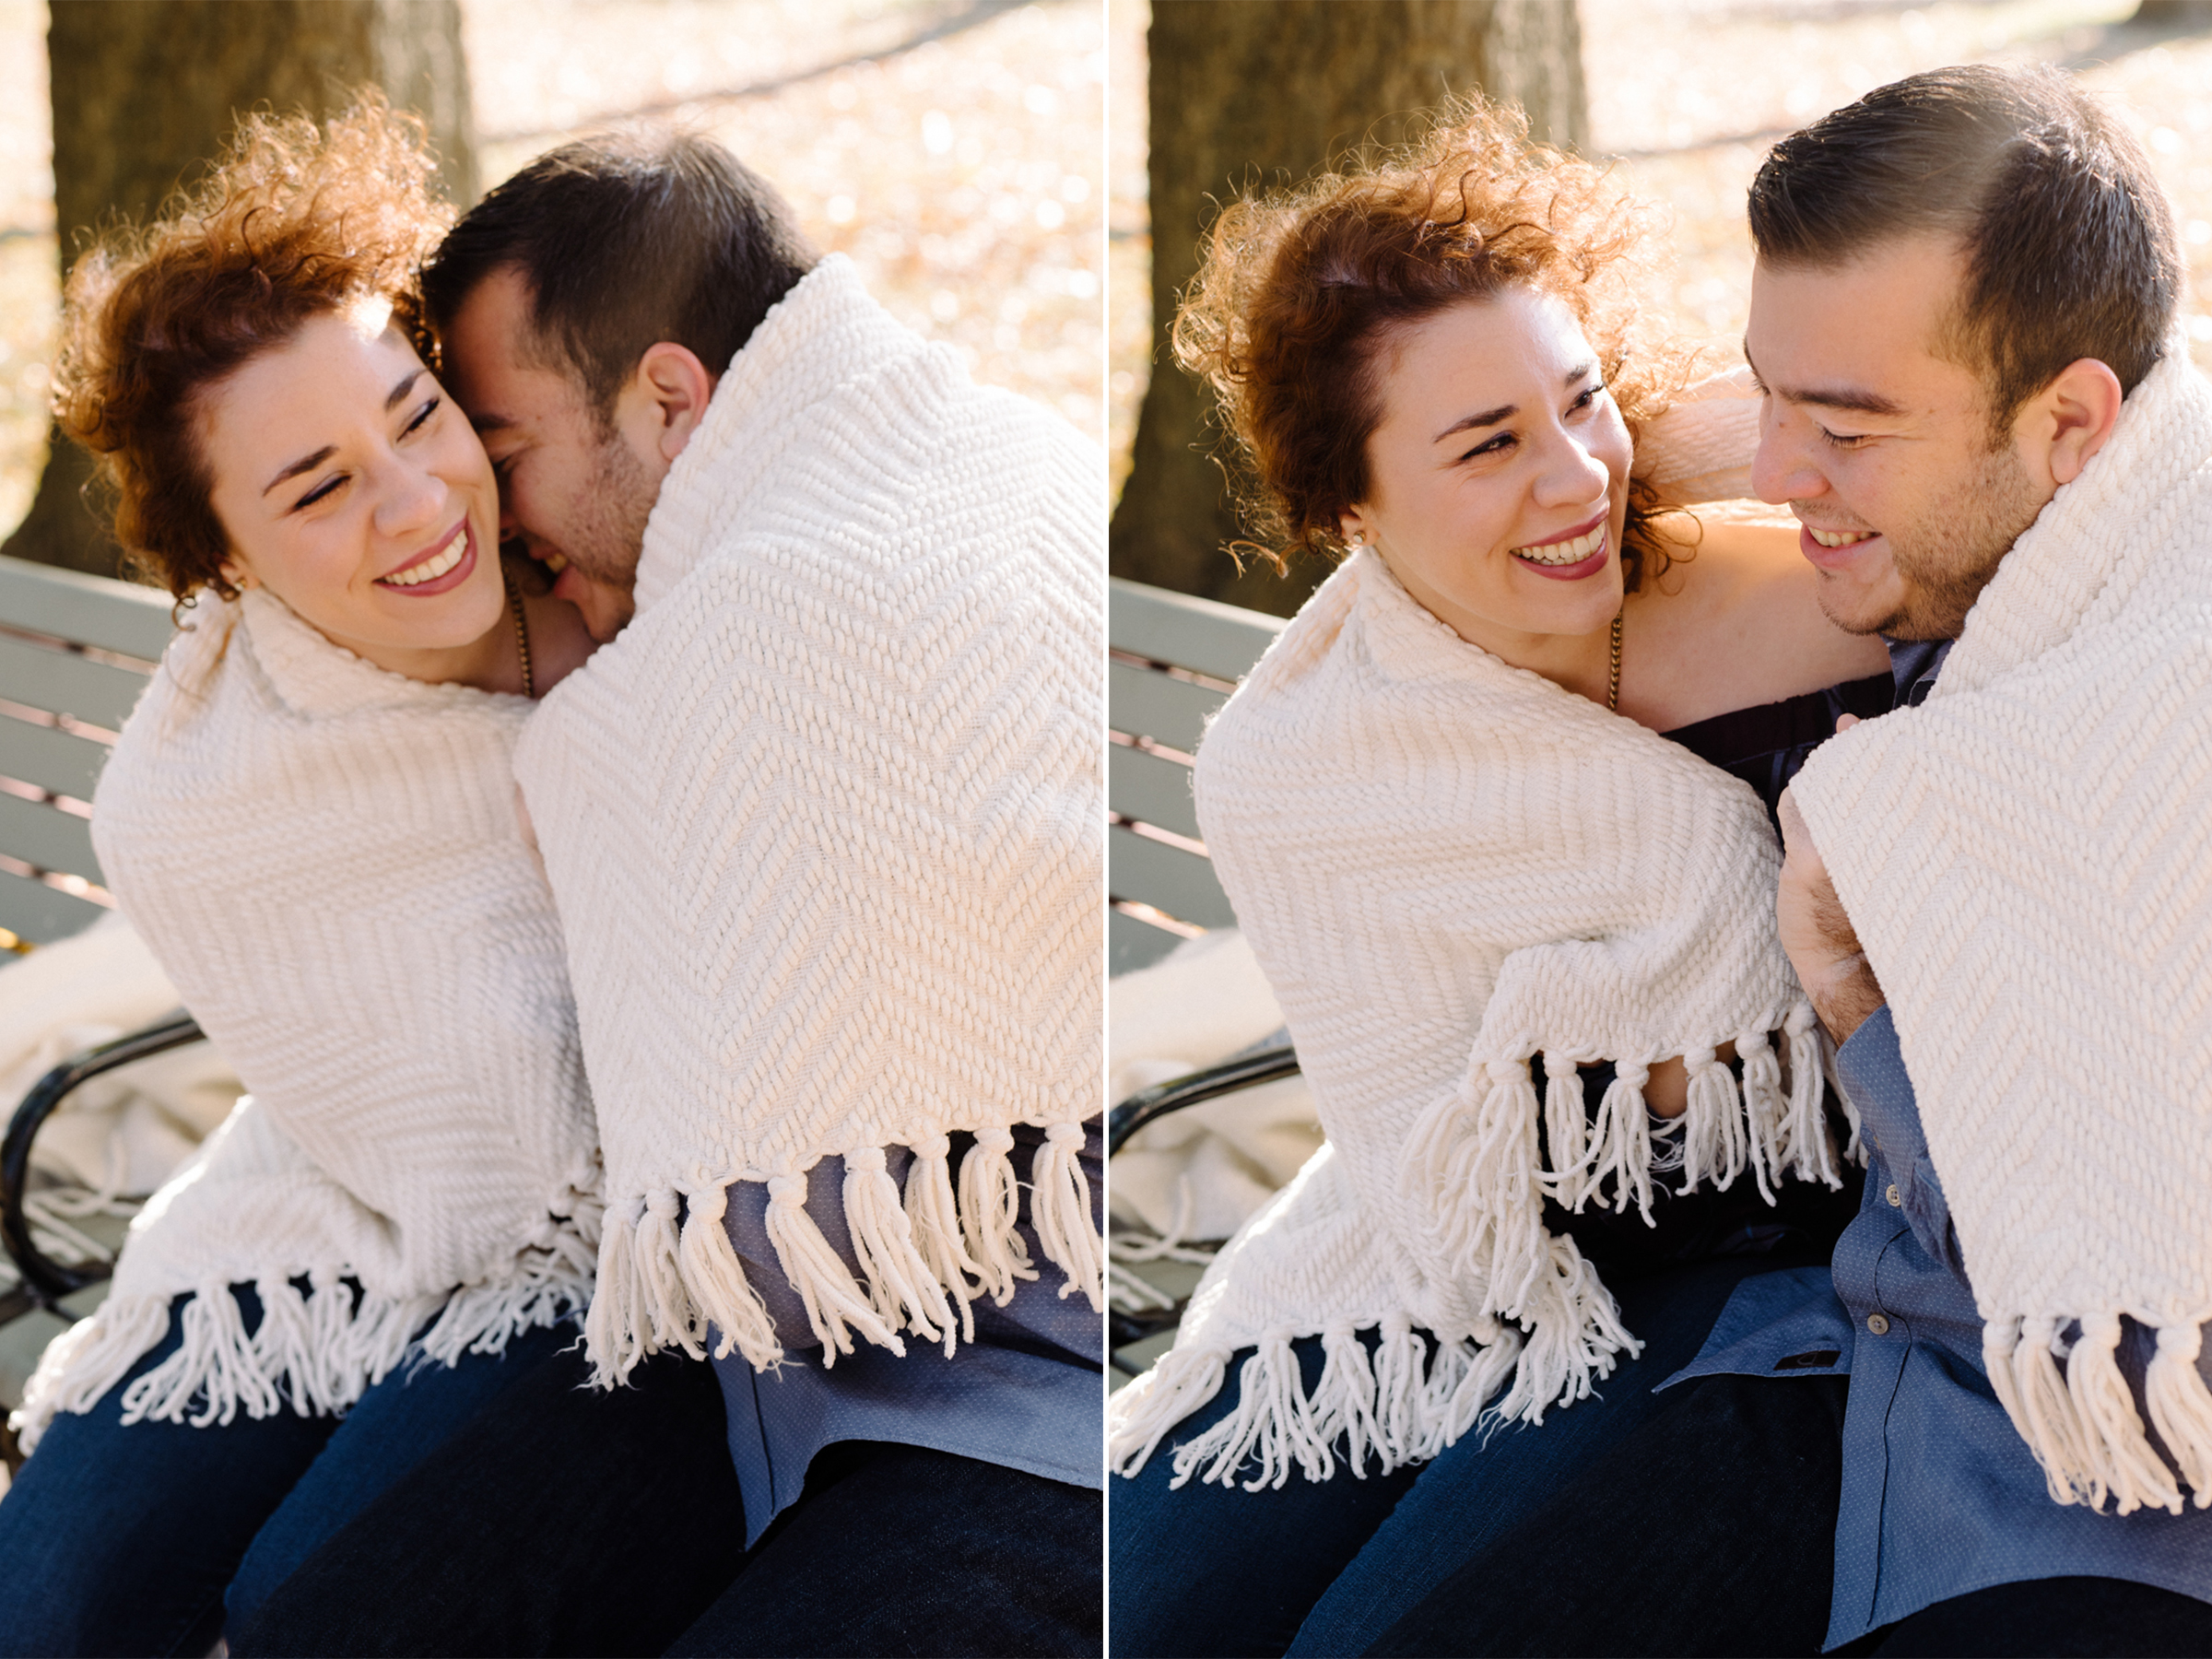 Melissa+Kenny- Watsessing Park Fall Engagement Session-Cuddling Under Blanket- Bloomfield New Jersey- Olivia Christina Photo.JPG